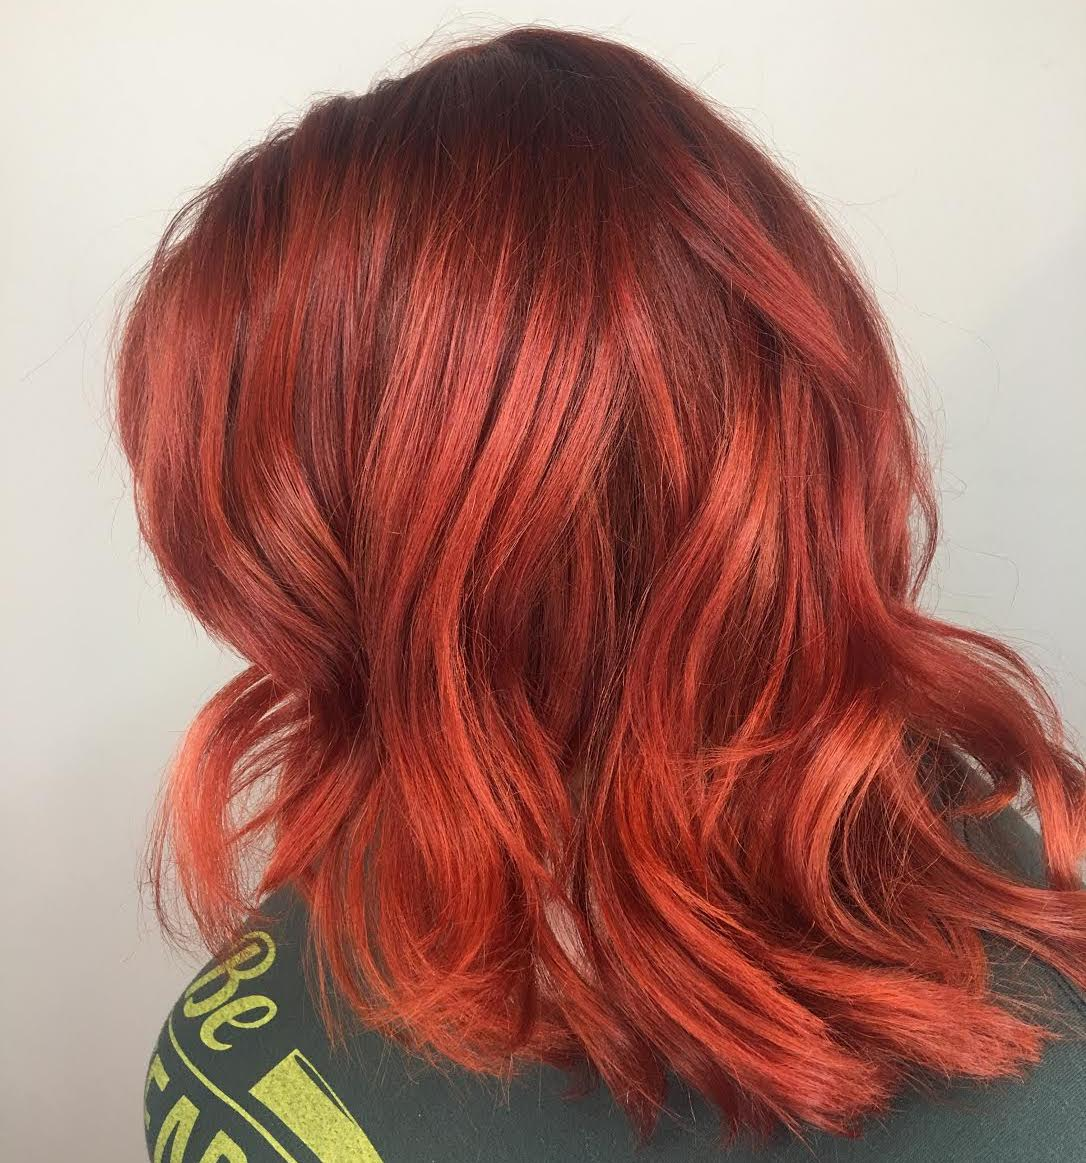 Christina Childress Highland Village Hairstylist Red Hair Color Fashion Vivid